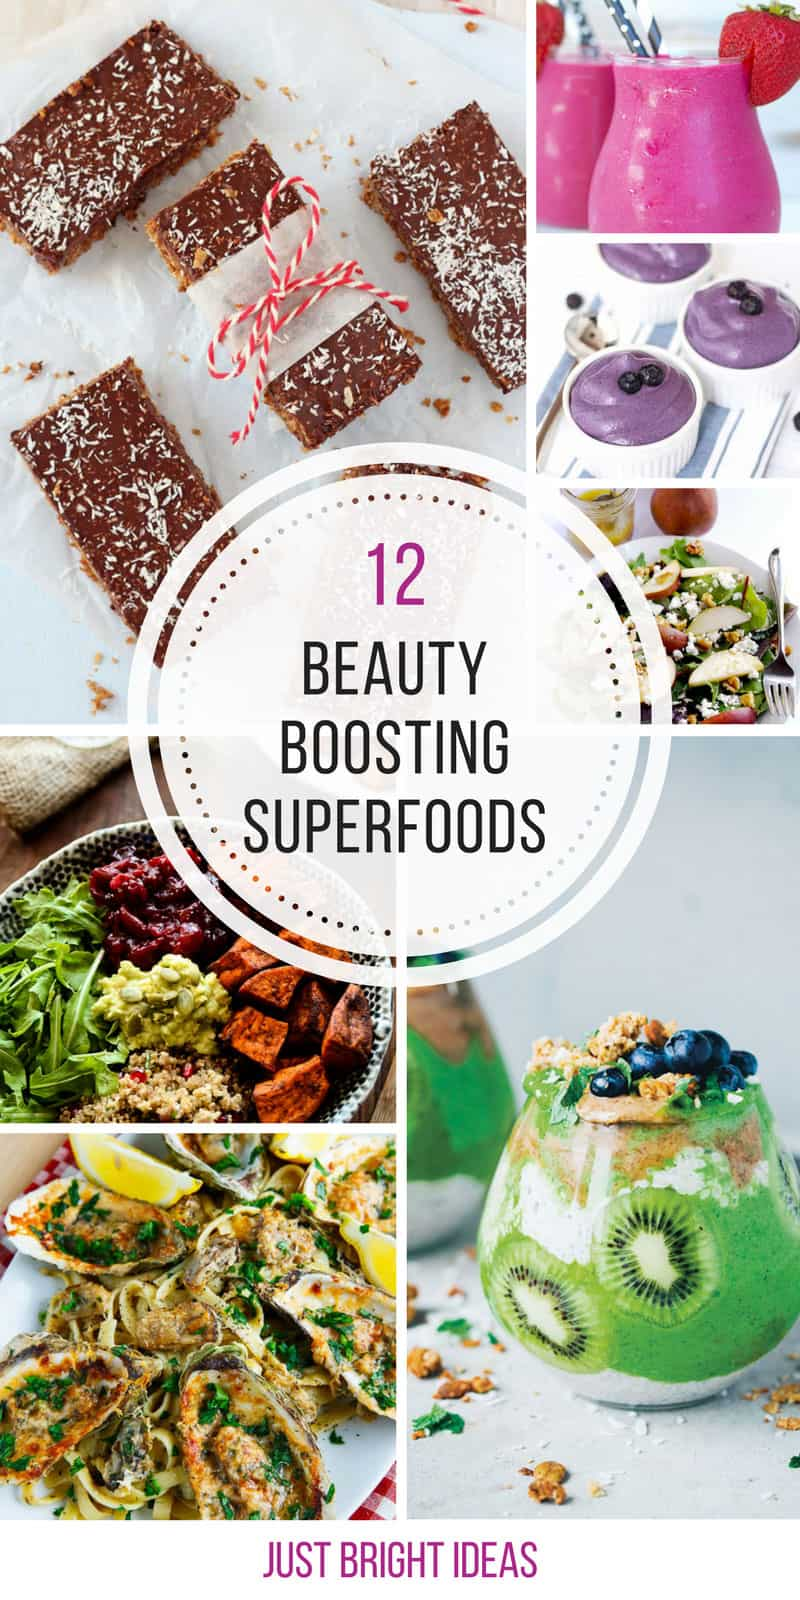 These beauty superfood recipes are AMAZING! Thanks for sharing!